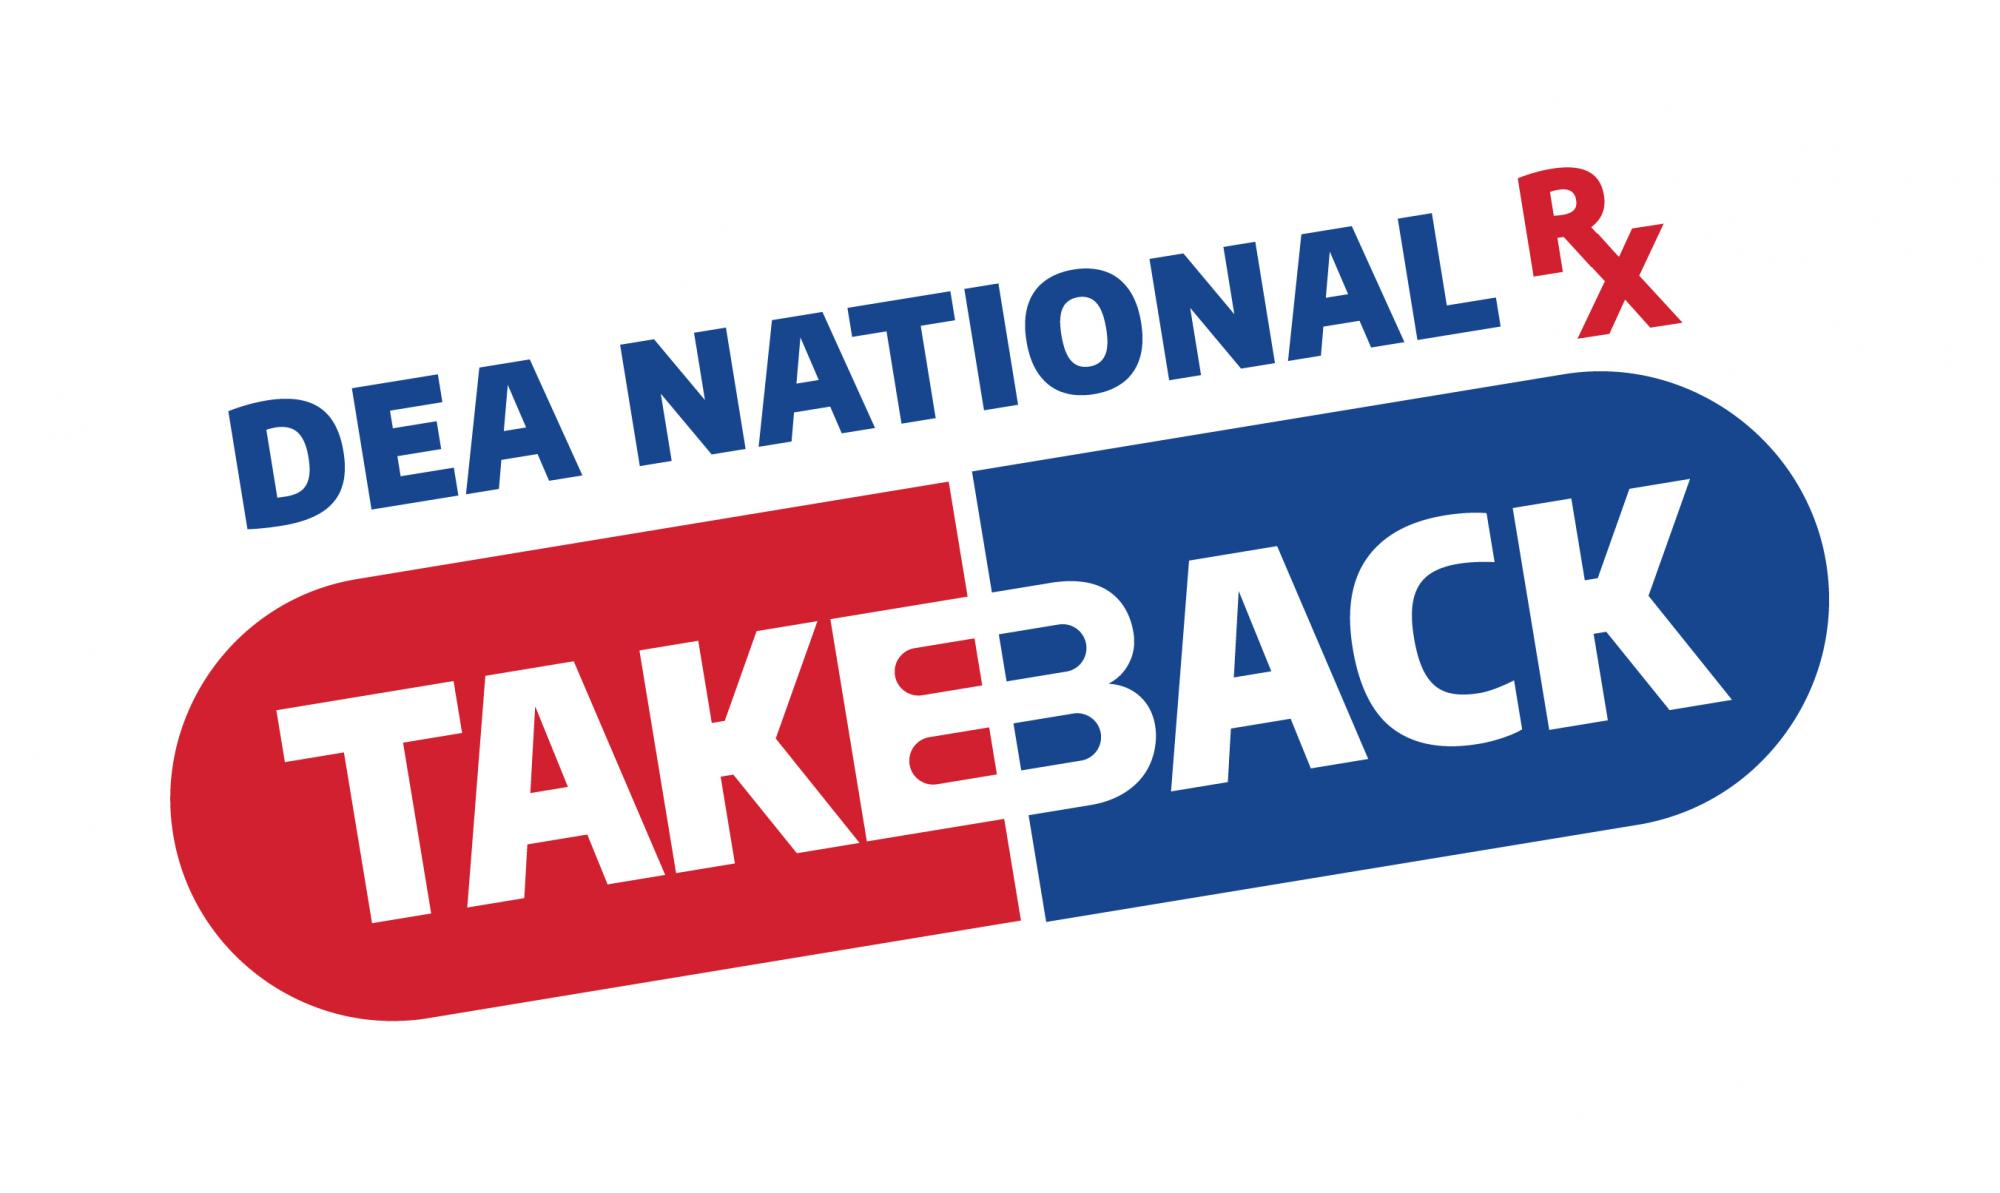 DEA National Rx TakeBack Drug Day logo